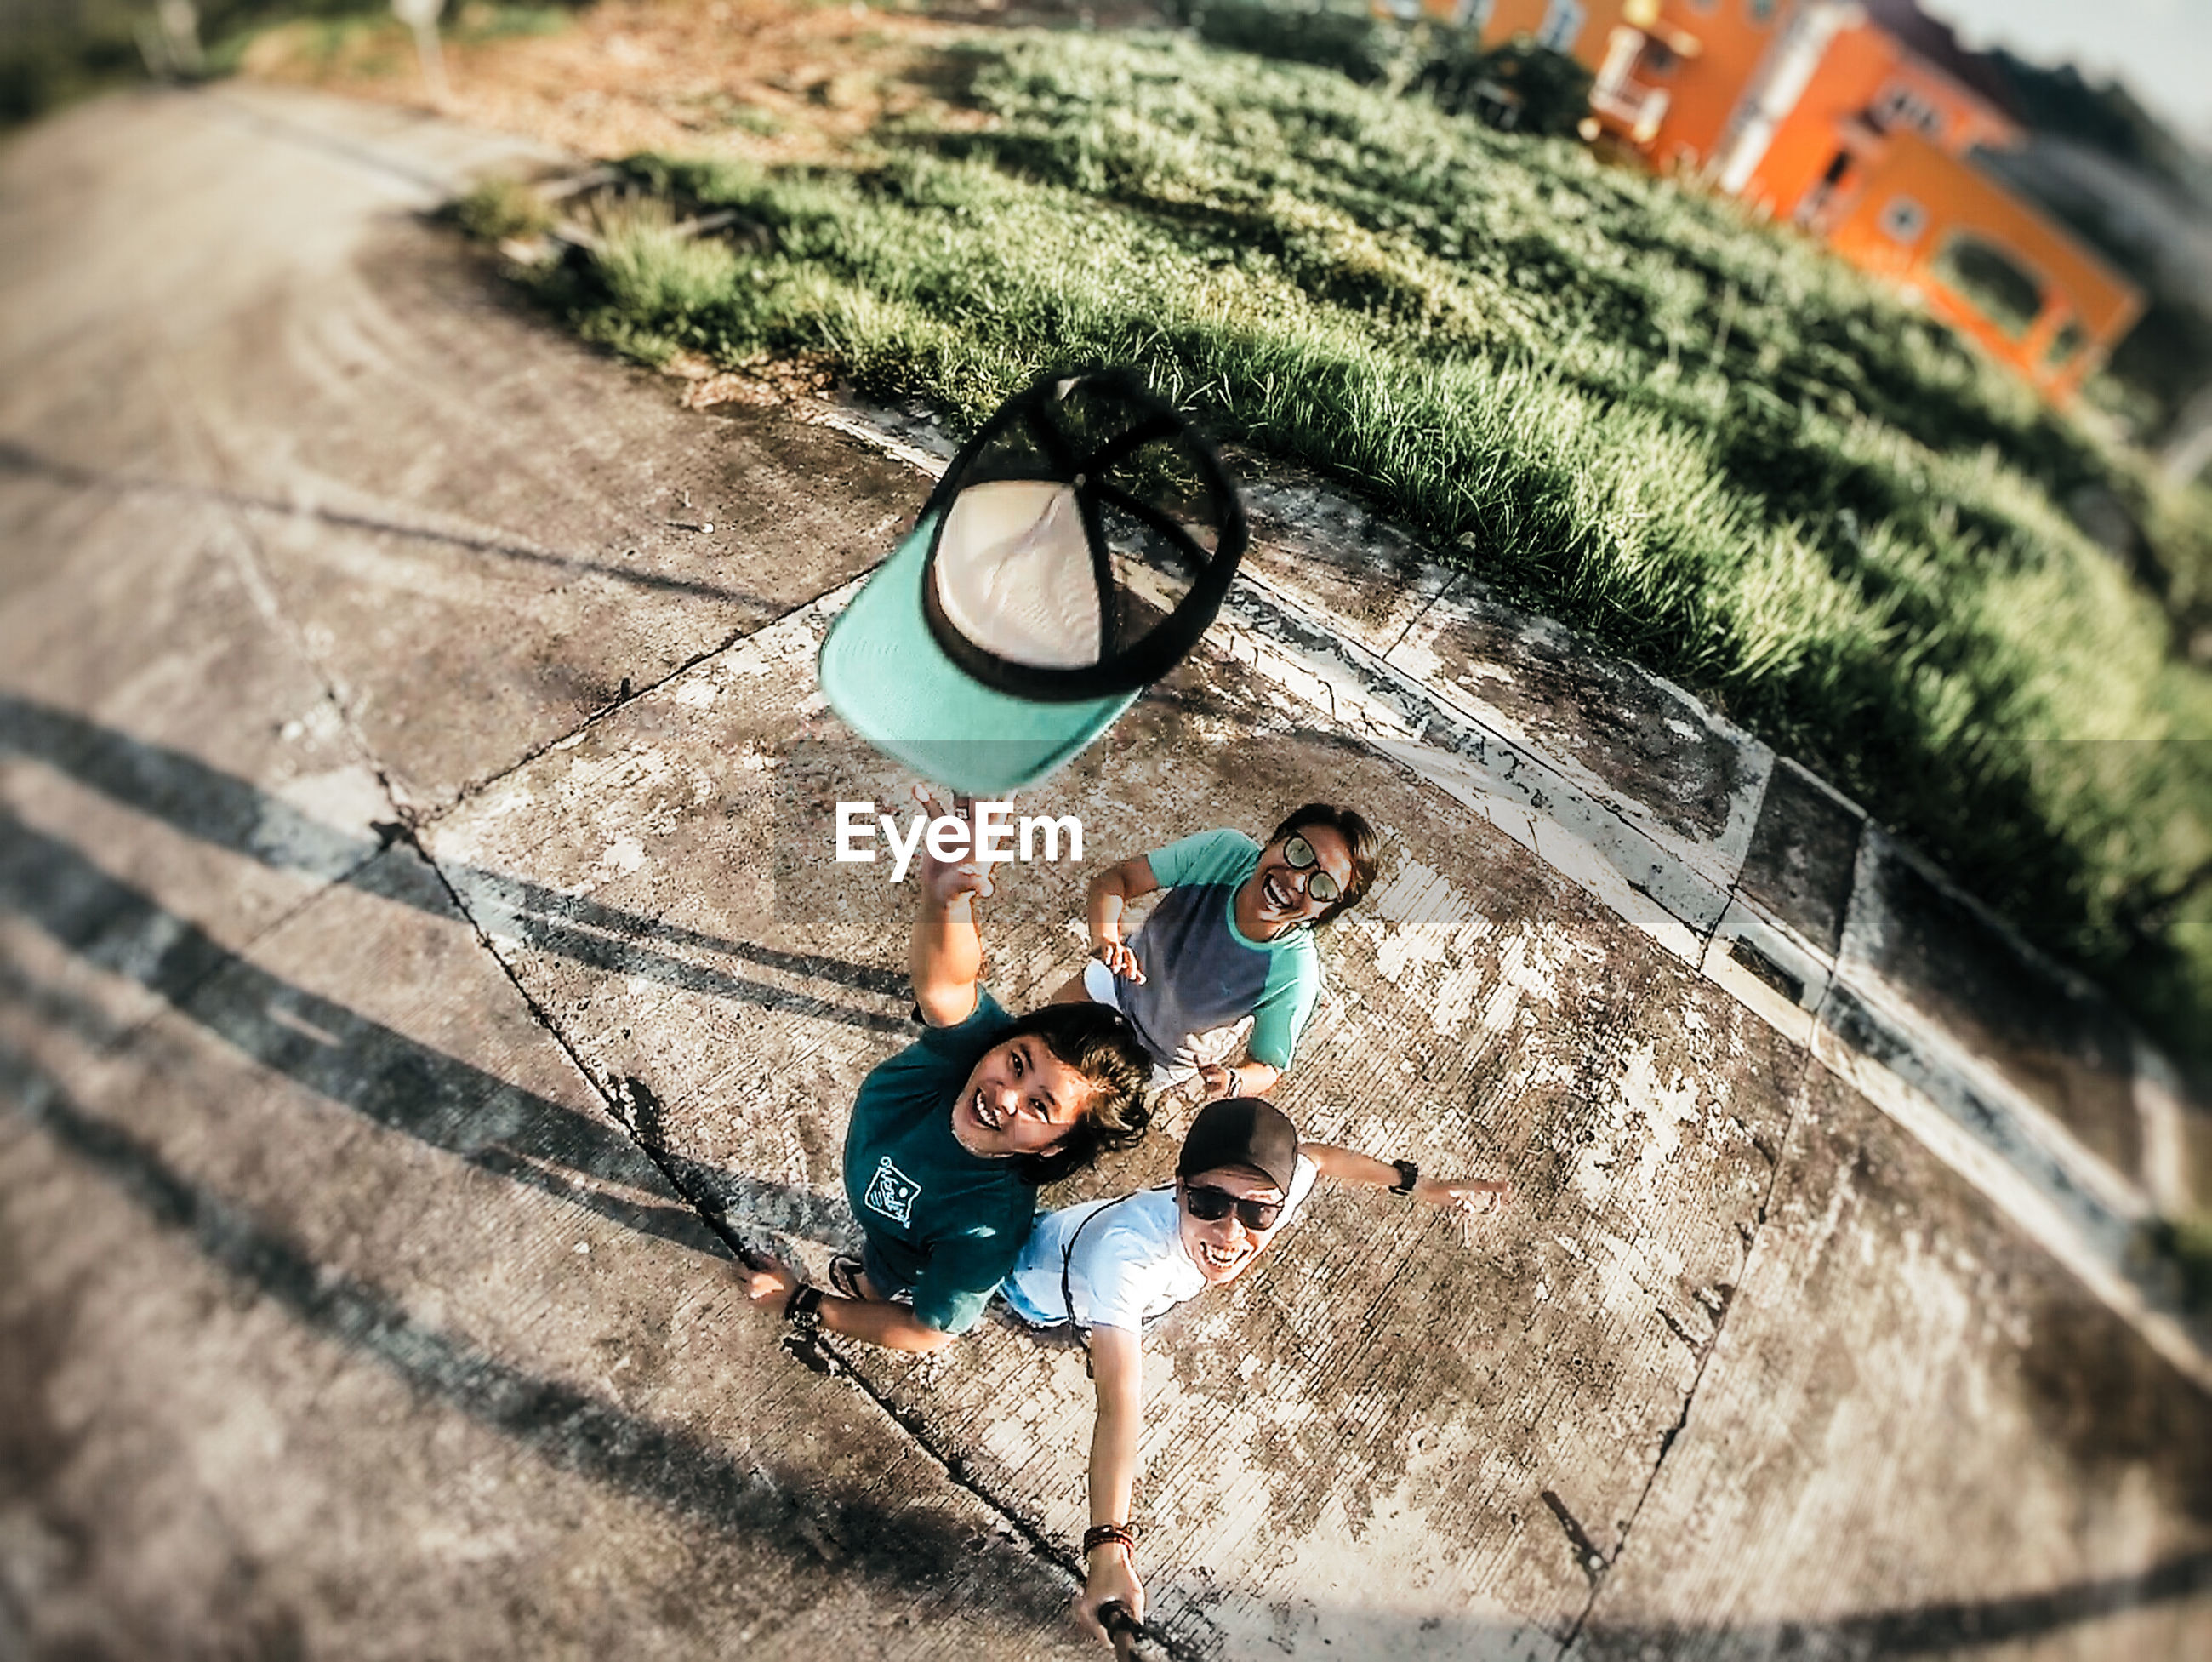 high angle view, togetherness, men, full length, real people, leisure activity, lifestyles, young men, group of people, nature, young adult, day, males, childhood, child, bonding, casual clothing, people, outdoors, friendship, positive emotion